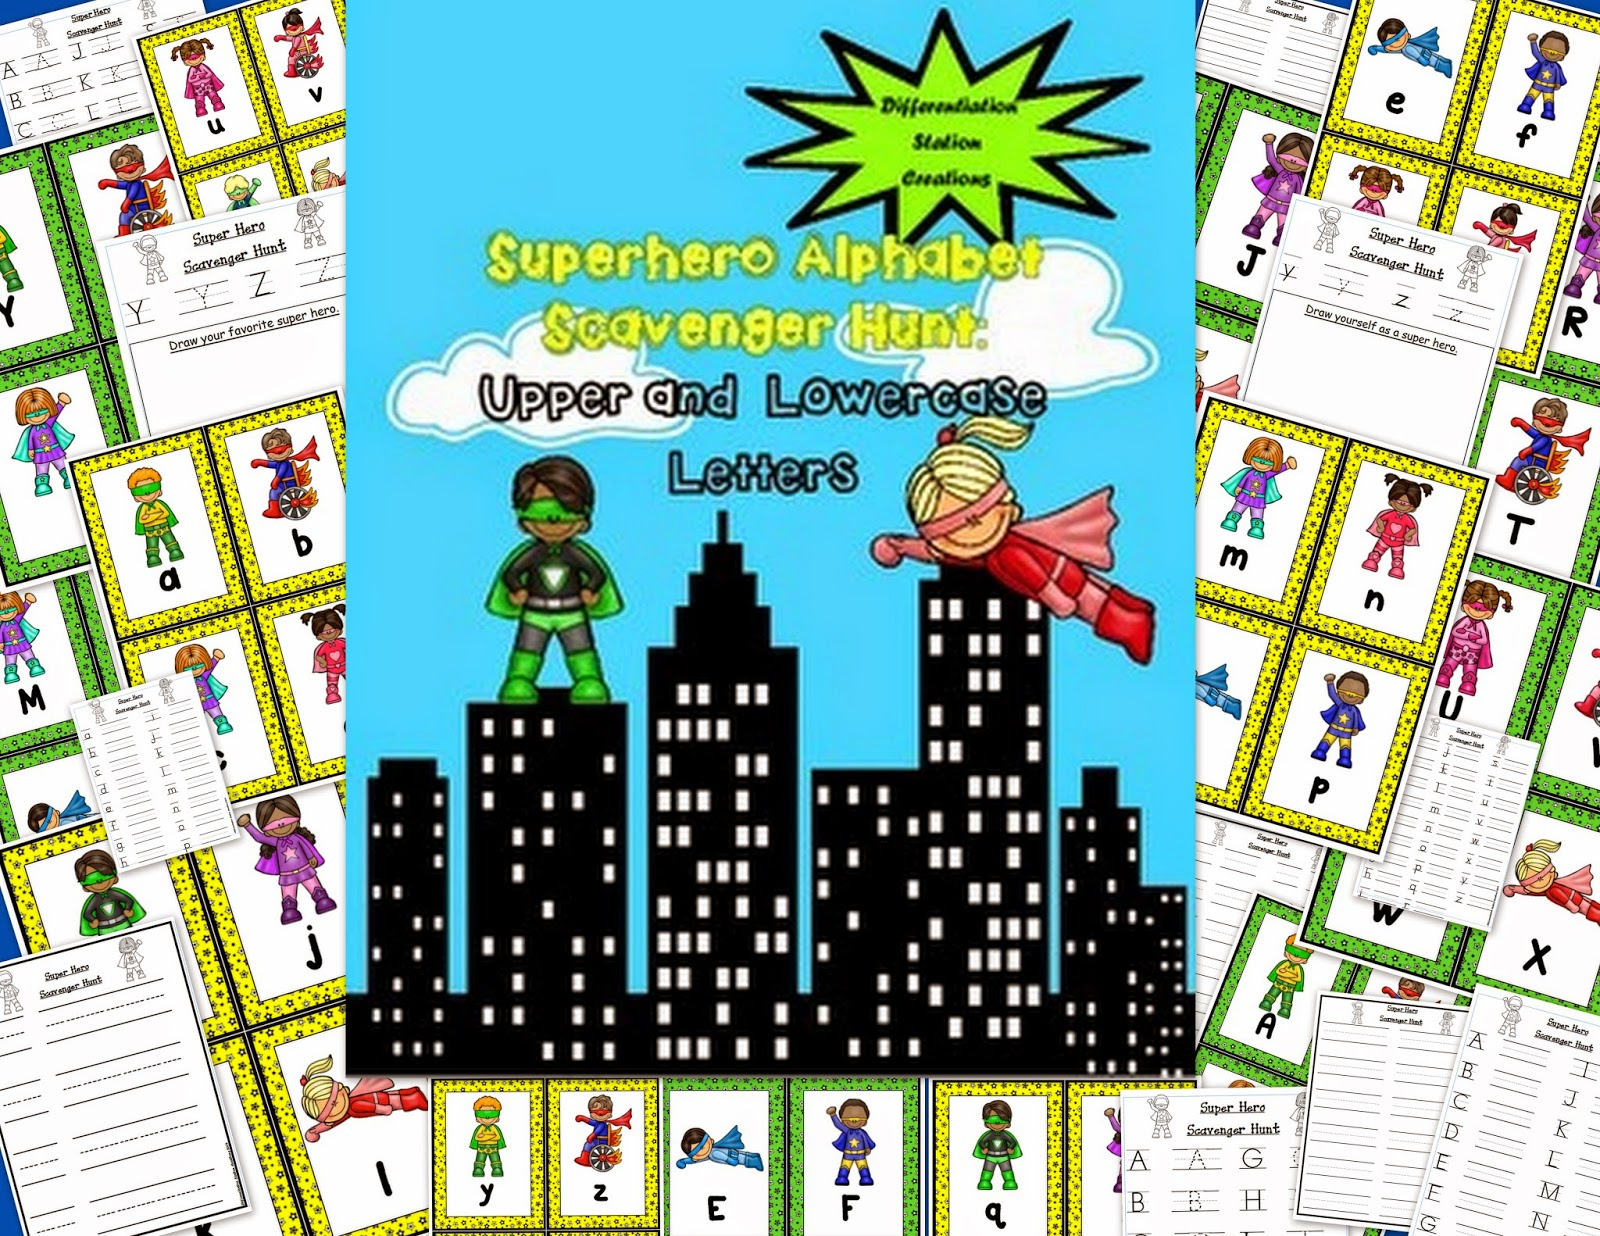 http://www.teacherspayteachers.com/Product/Super-Hero-Alphabet-Scavenger-Hunt-Upper-and-Lowercase-Letters-1166731